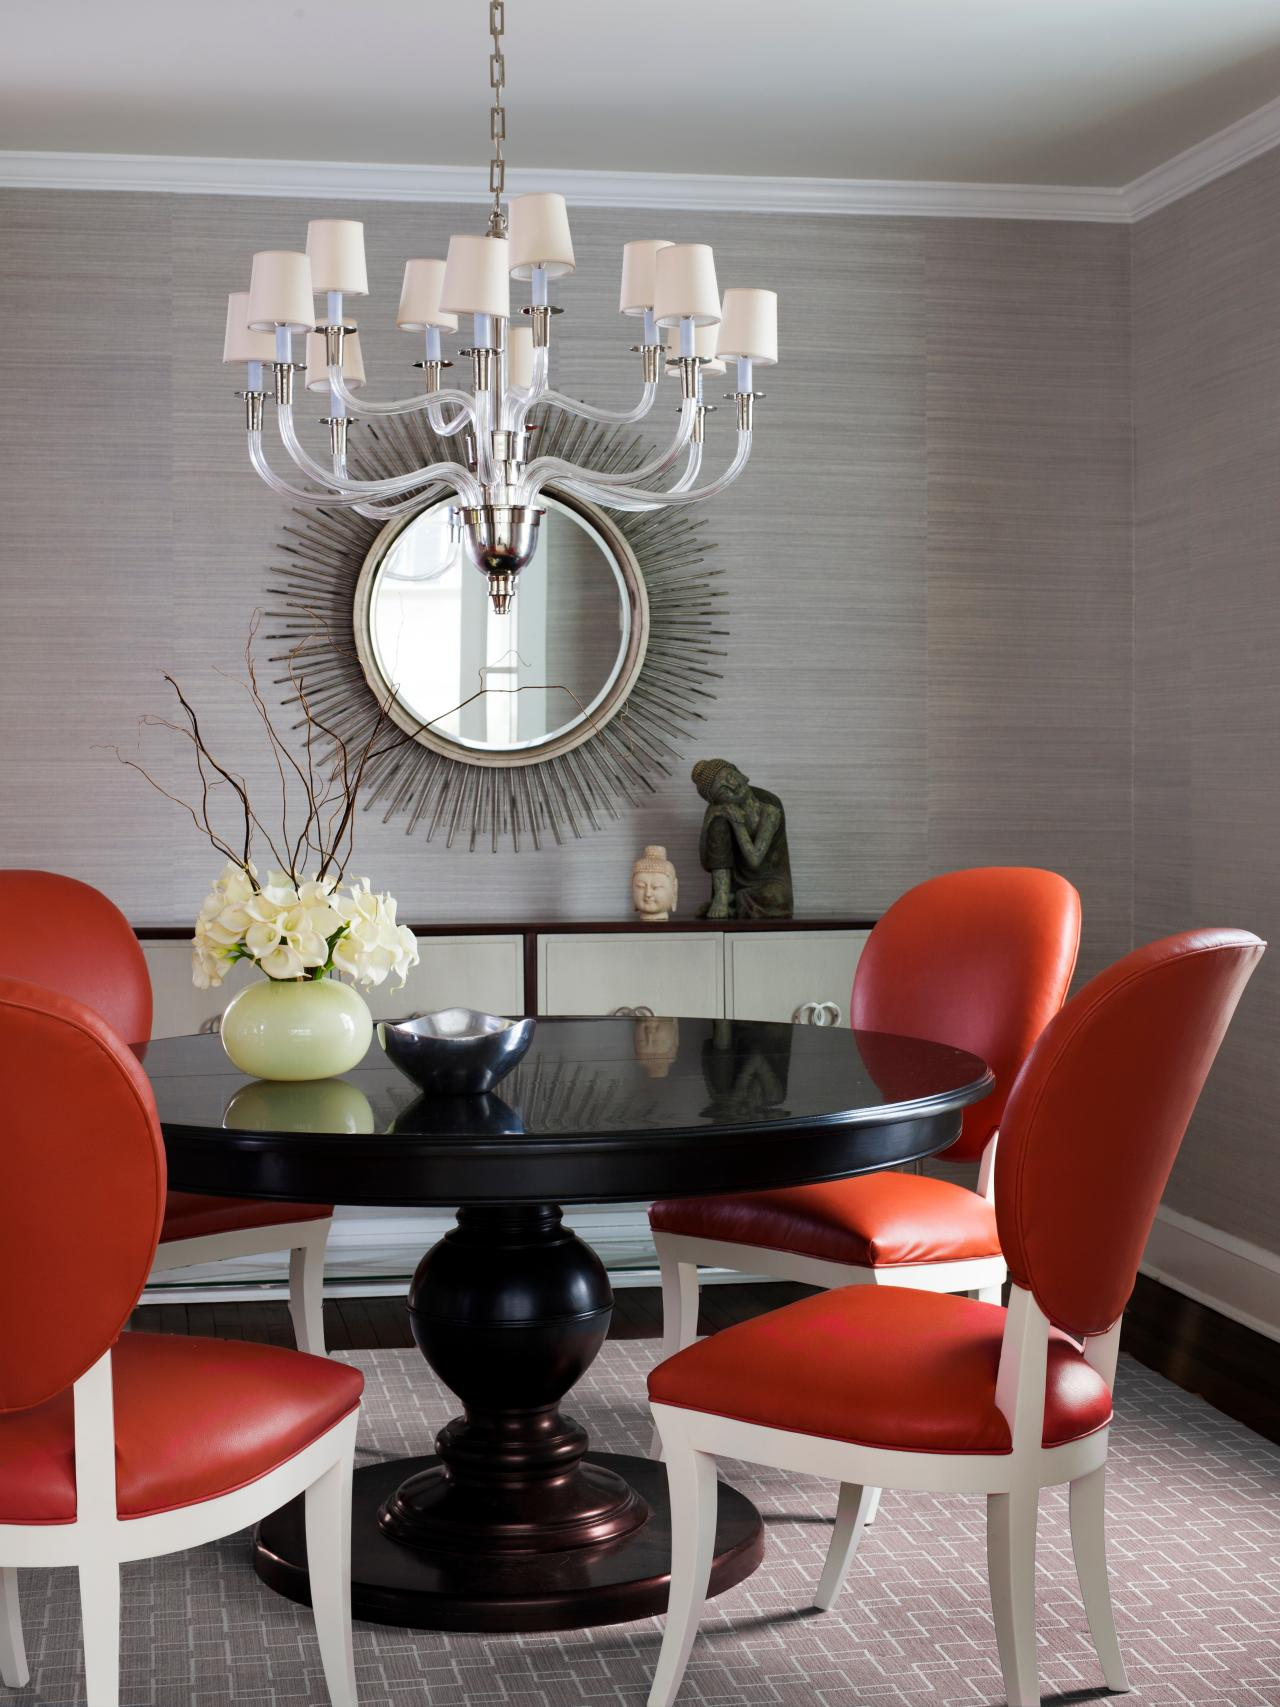 15 Ways to Dress Up Your Dining Room Walls  HGTVs